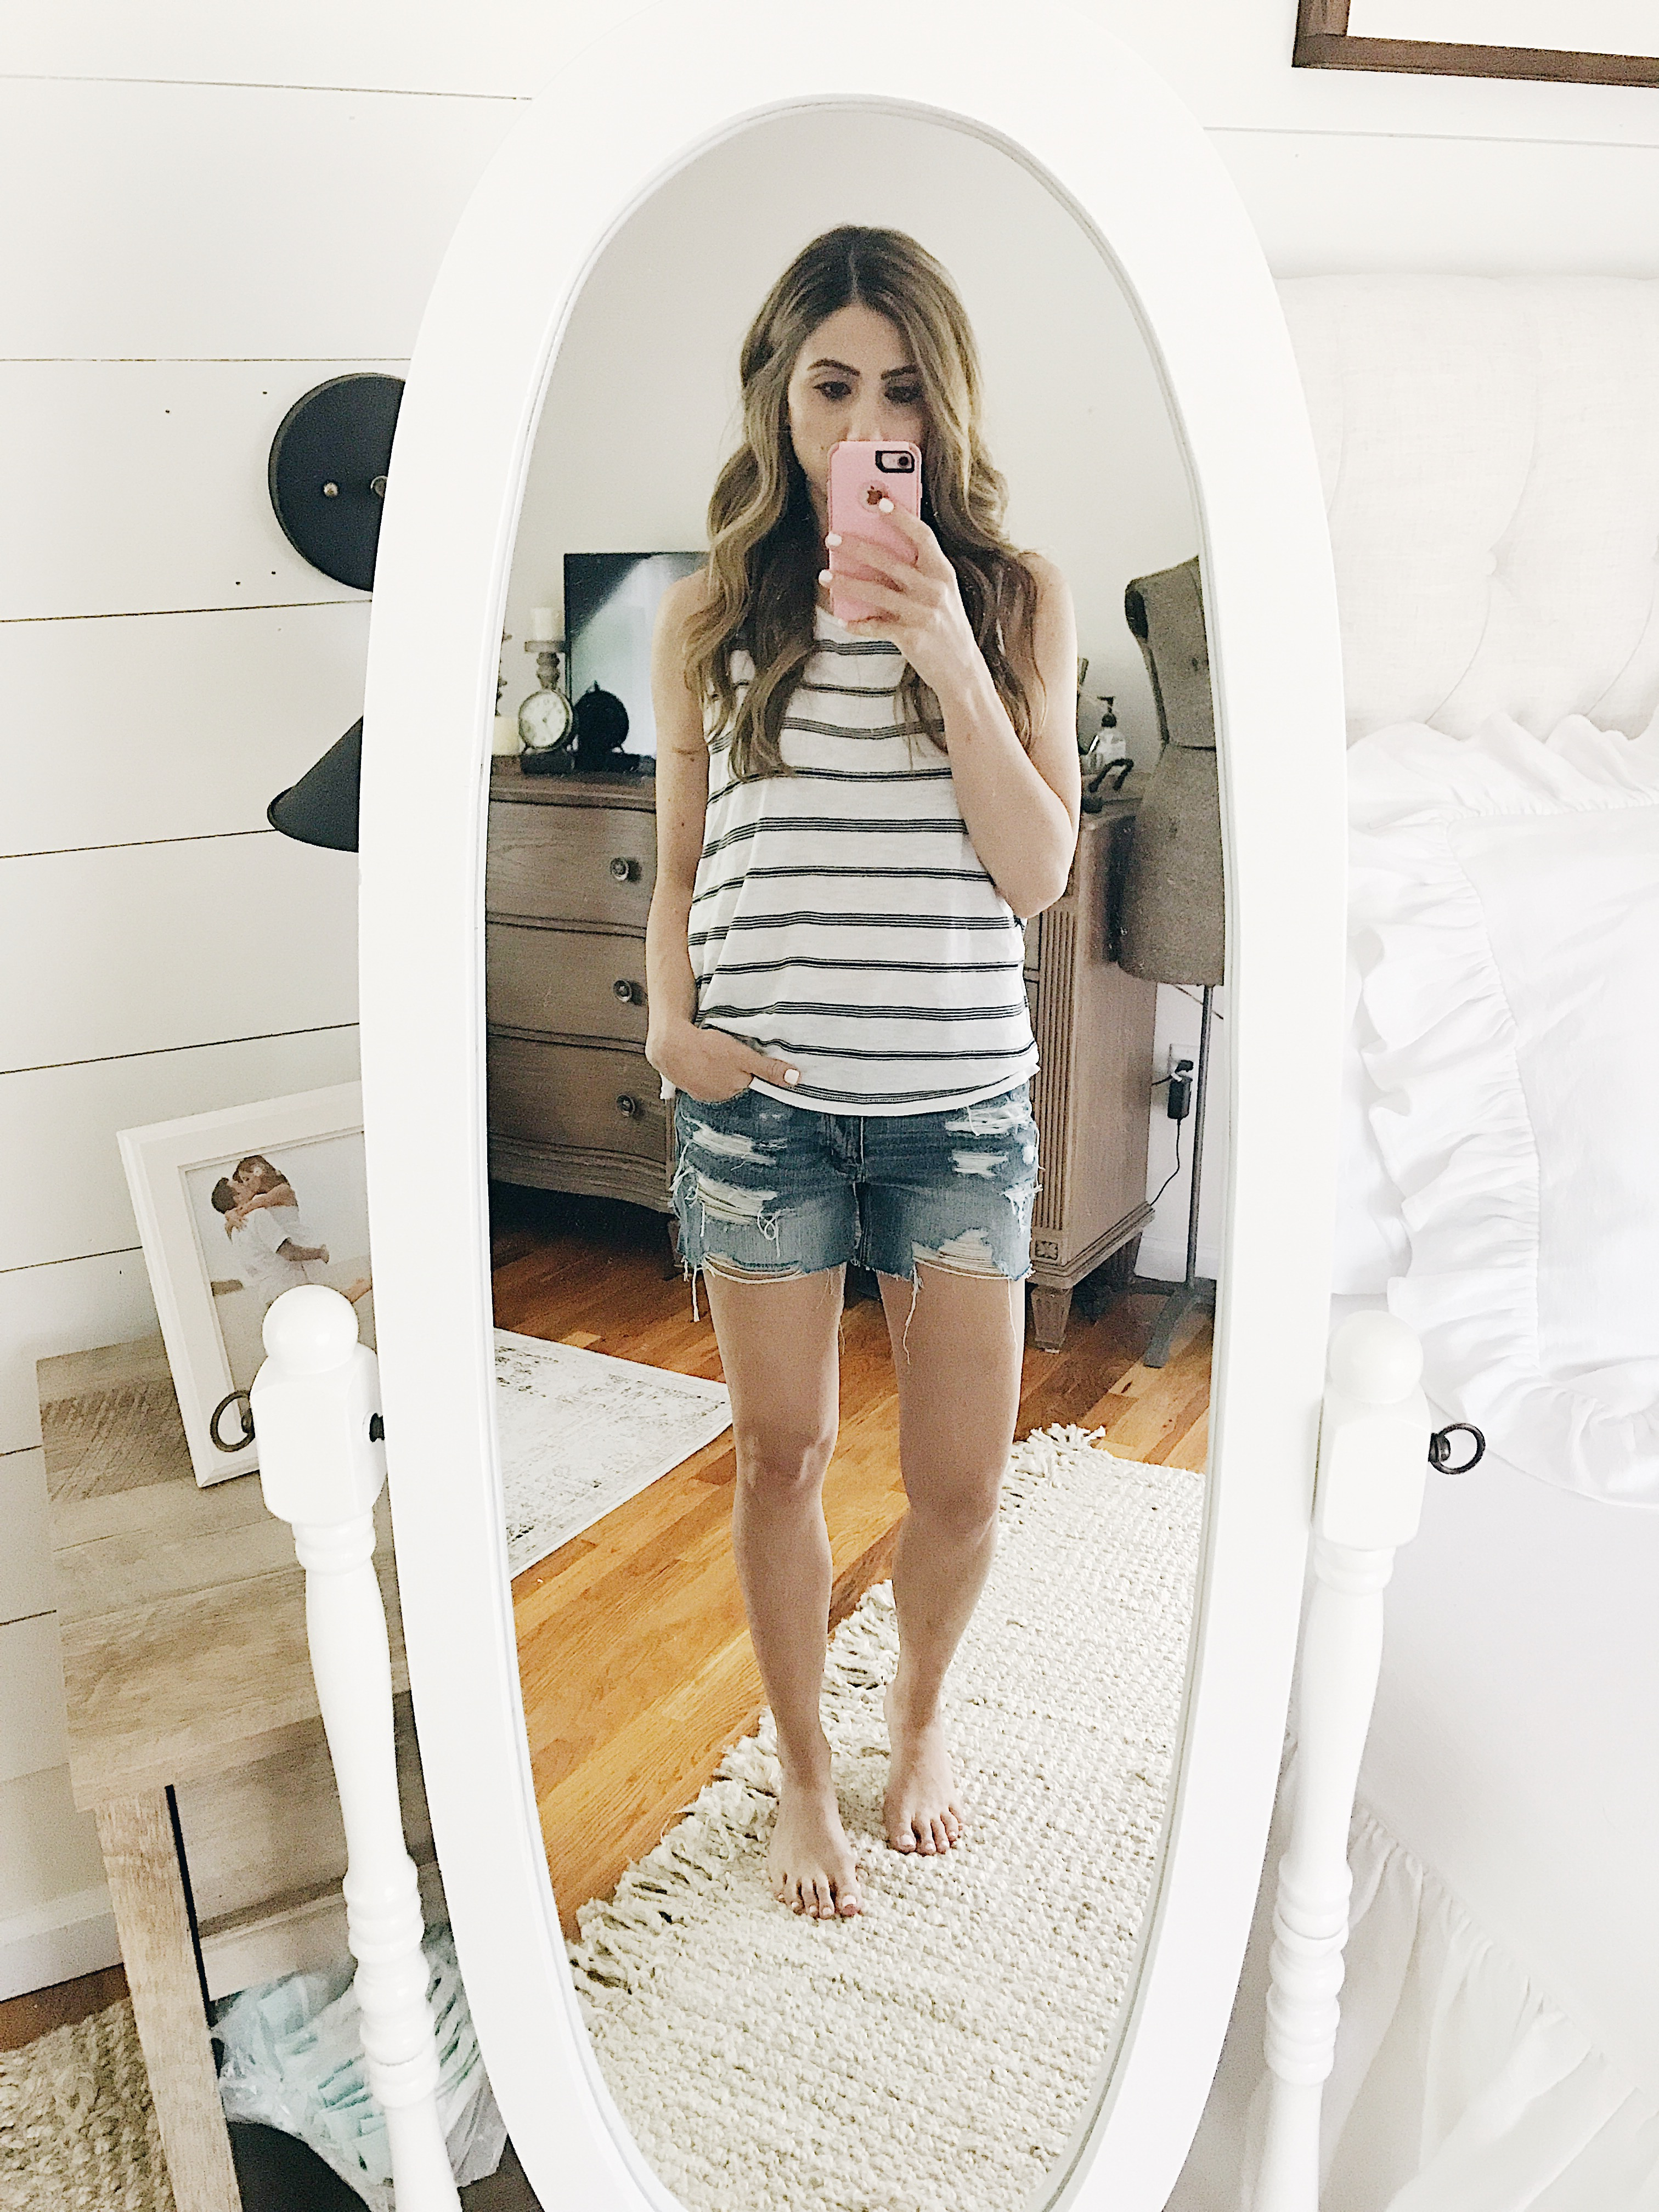 A full review of the Best Mom Shorts, including information on rise, inseam, and photos to show fit! Including a review of American Eagle's Tomgirl shorts.